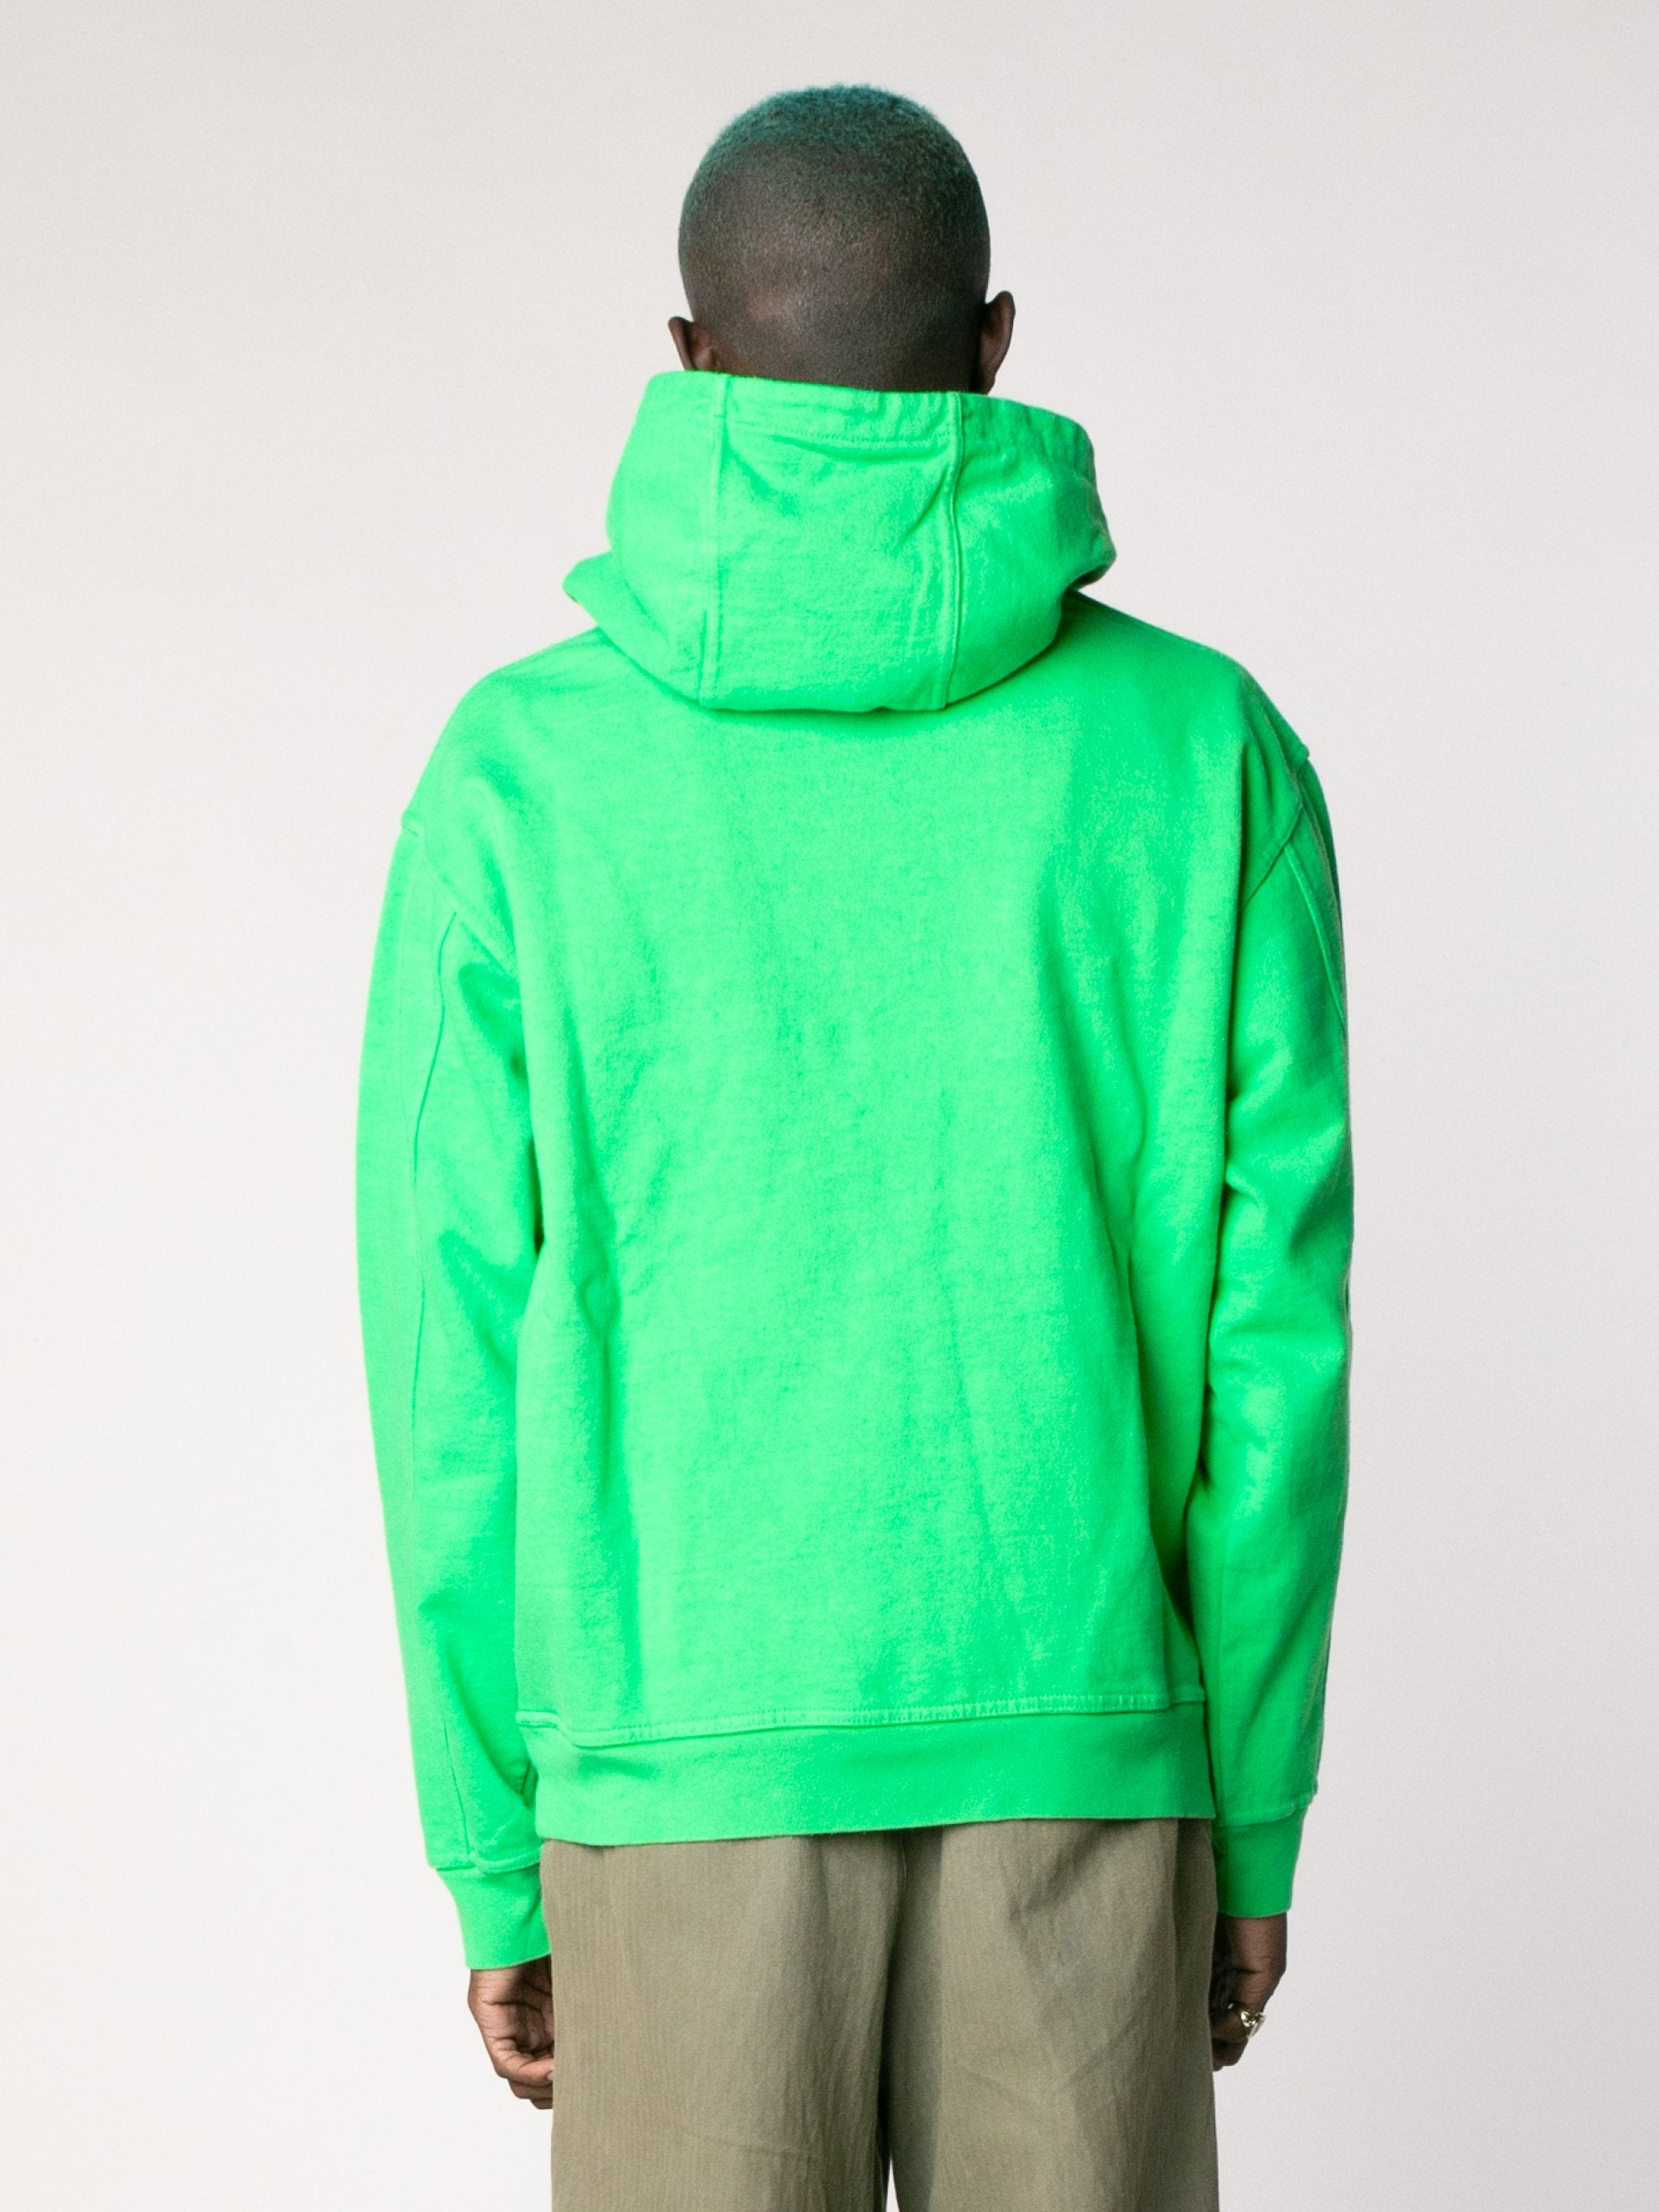 Kelly Green Embroidered Graffiti Hoodie 6